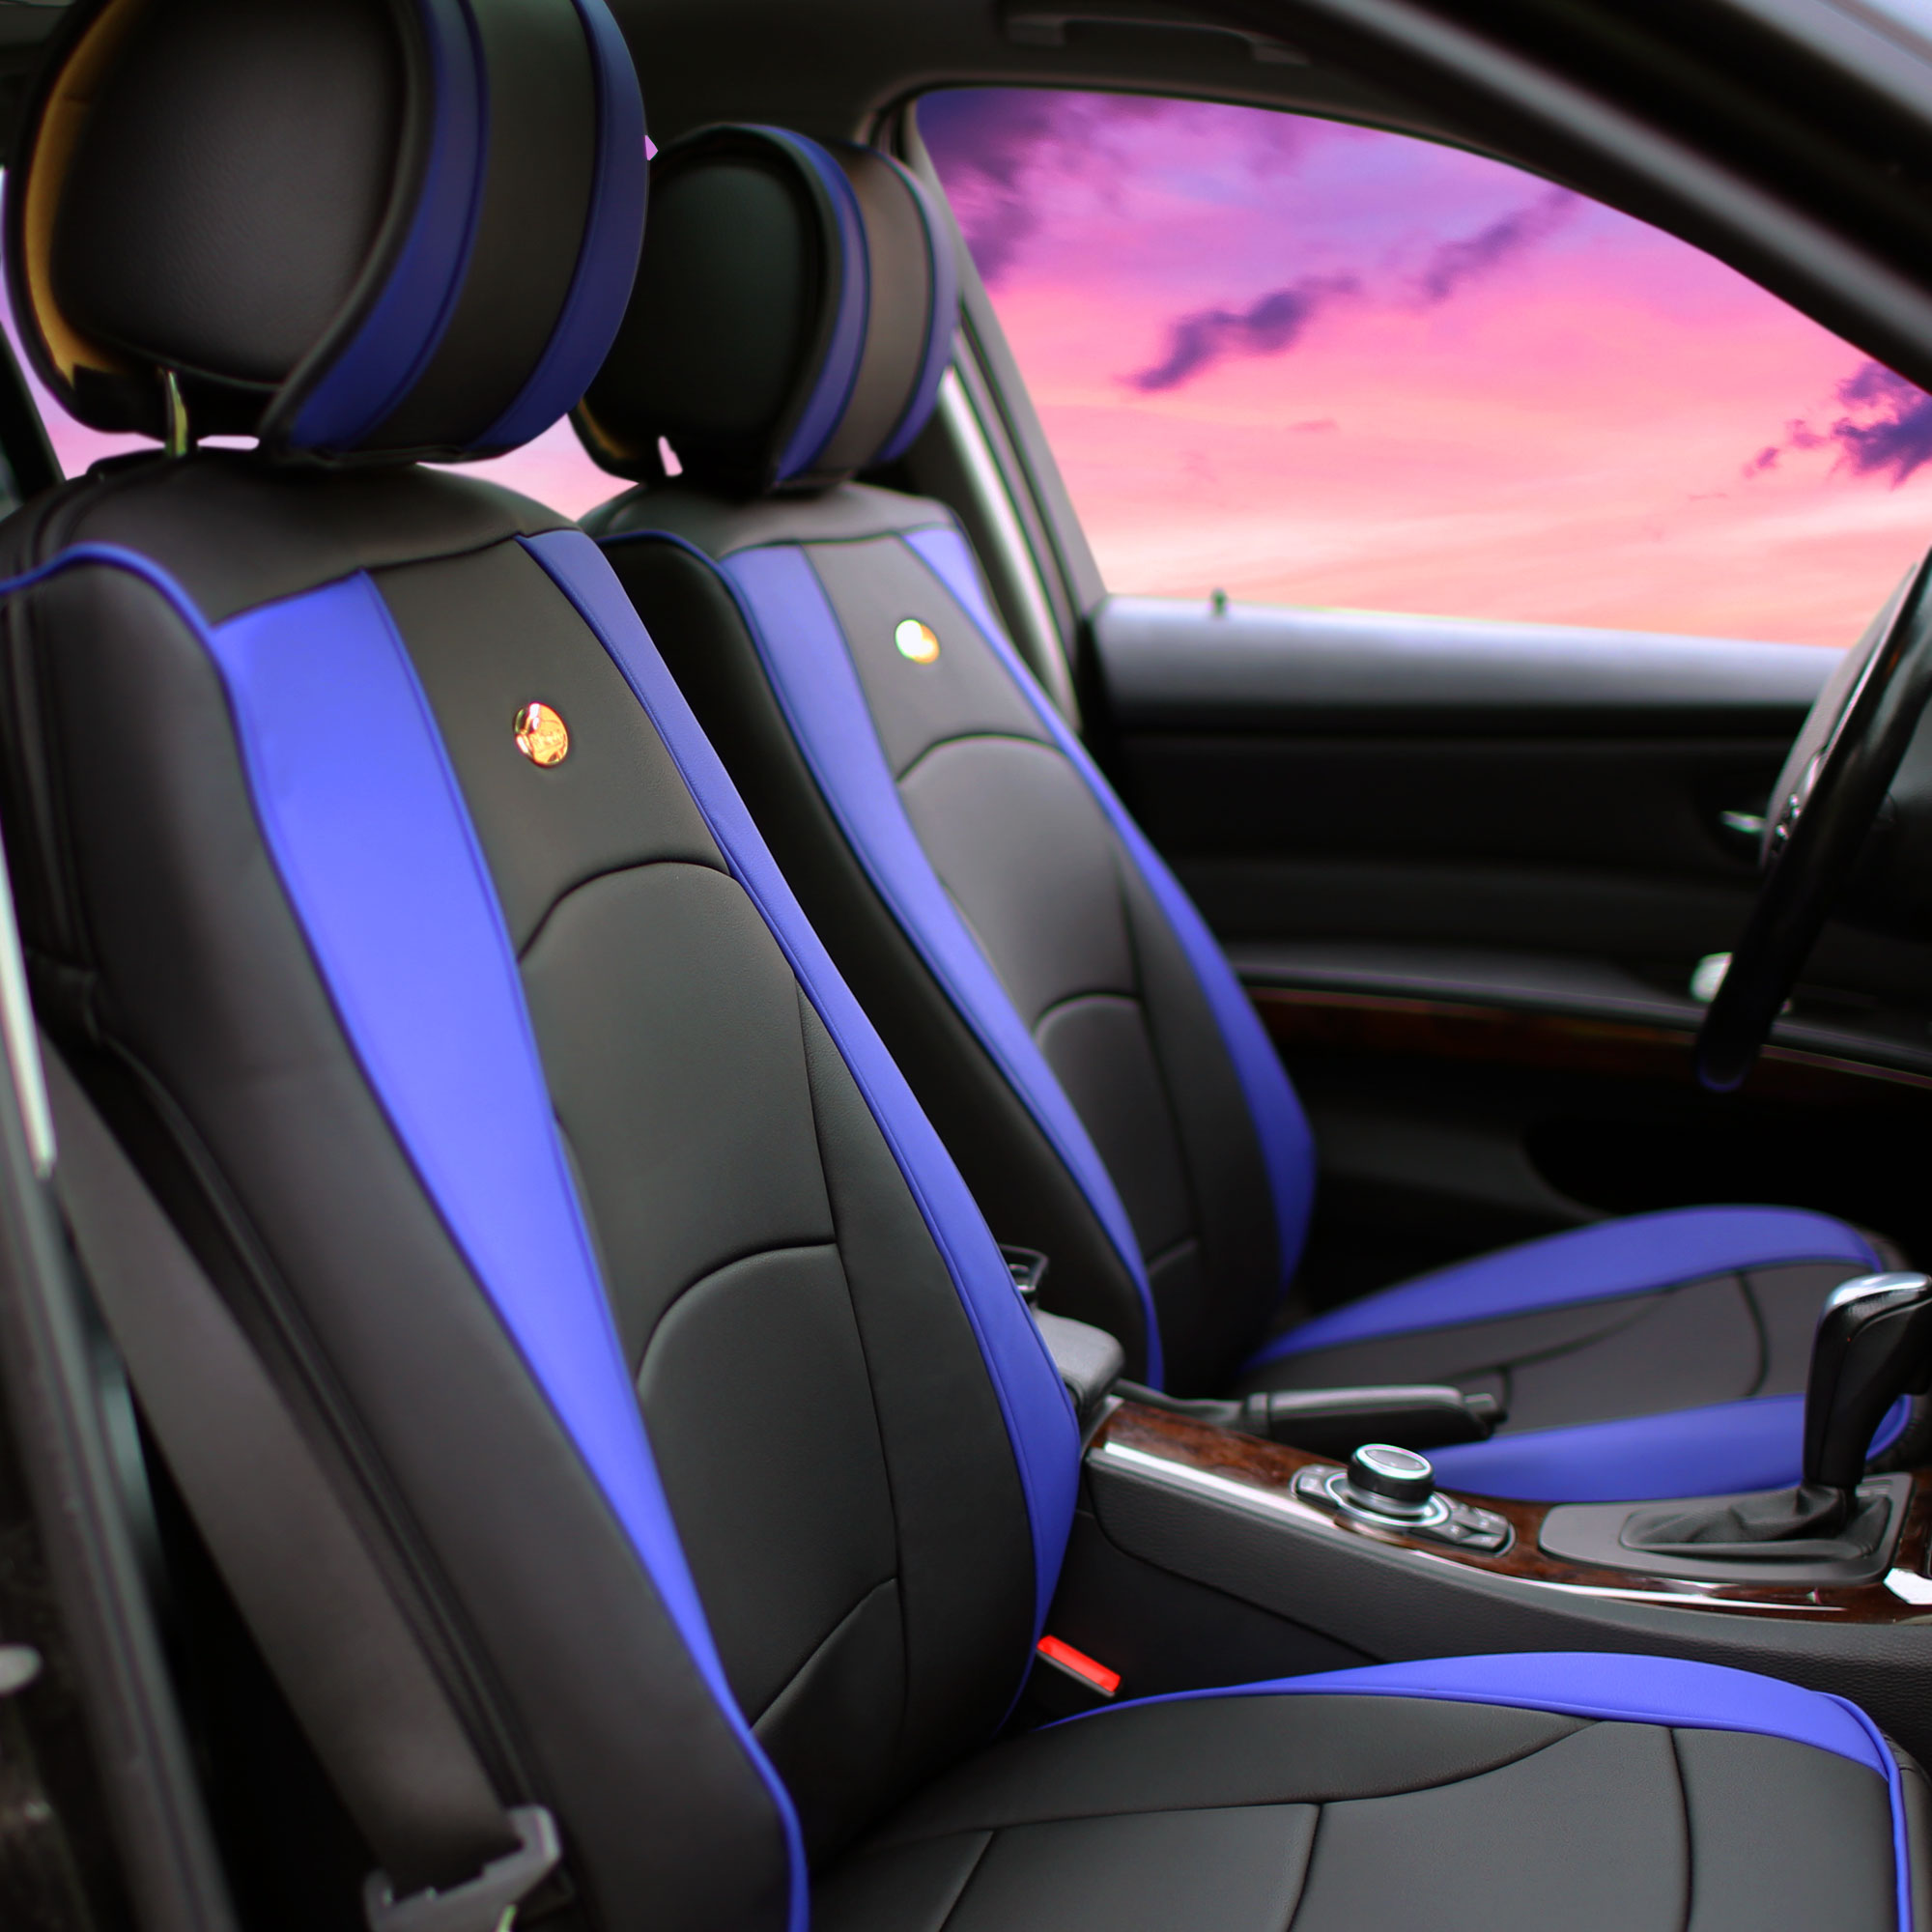 Luxury-Leather-Seat-Cushion-Covers-Front-Bucket-Pair-11-Color-Options thumbnail 20